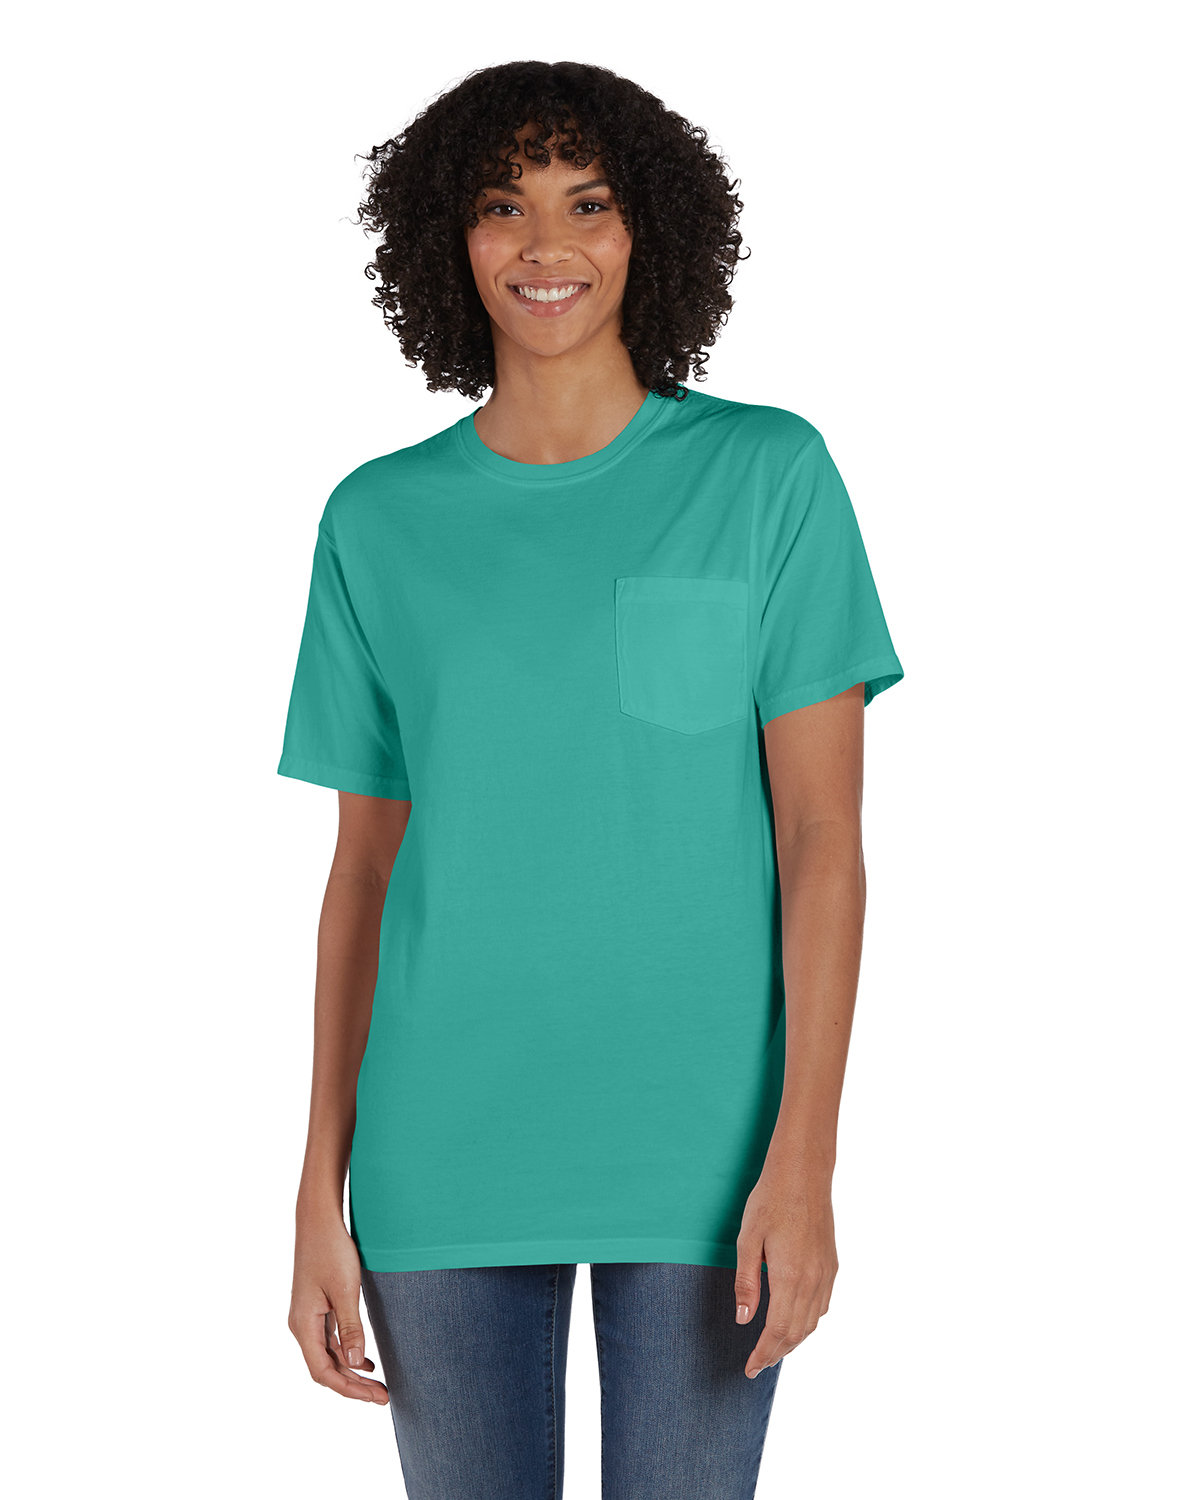 ComfortWash by Hanes Unisex Garment-Dyed T-Shirt with Pocket SPANISH MOSS